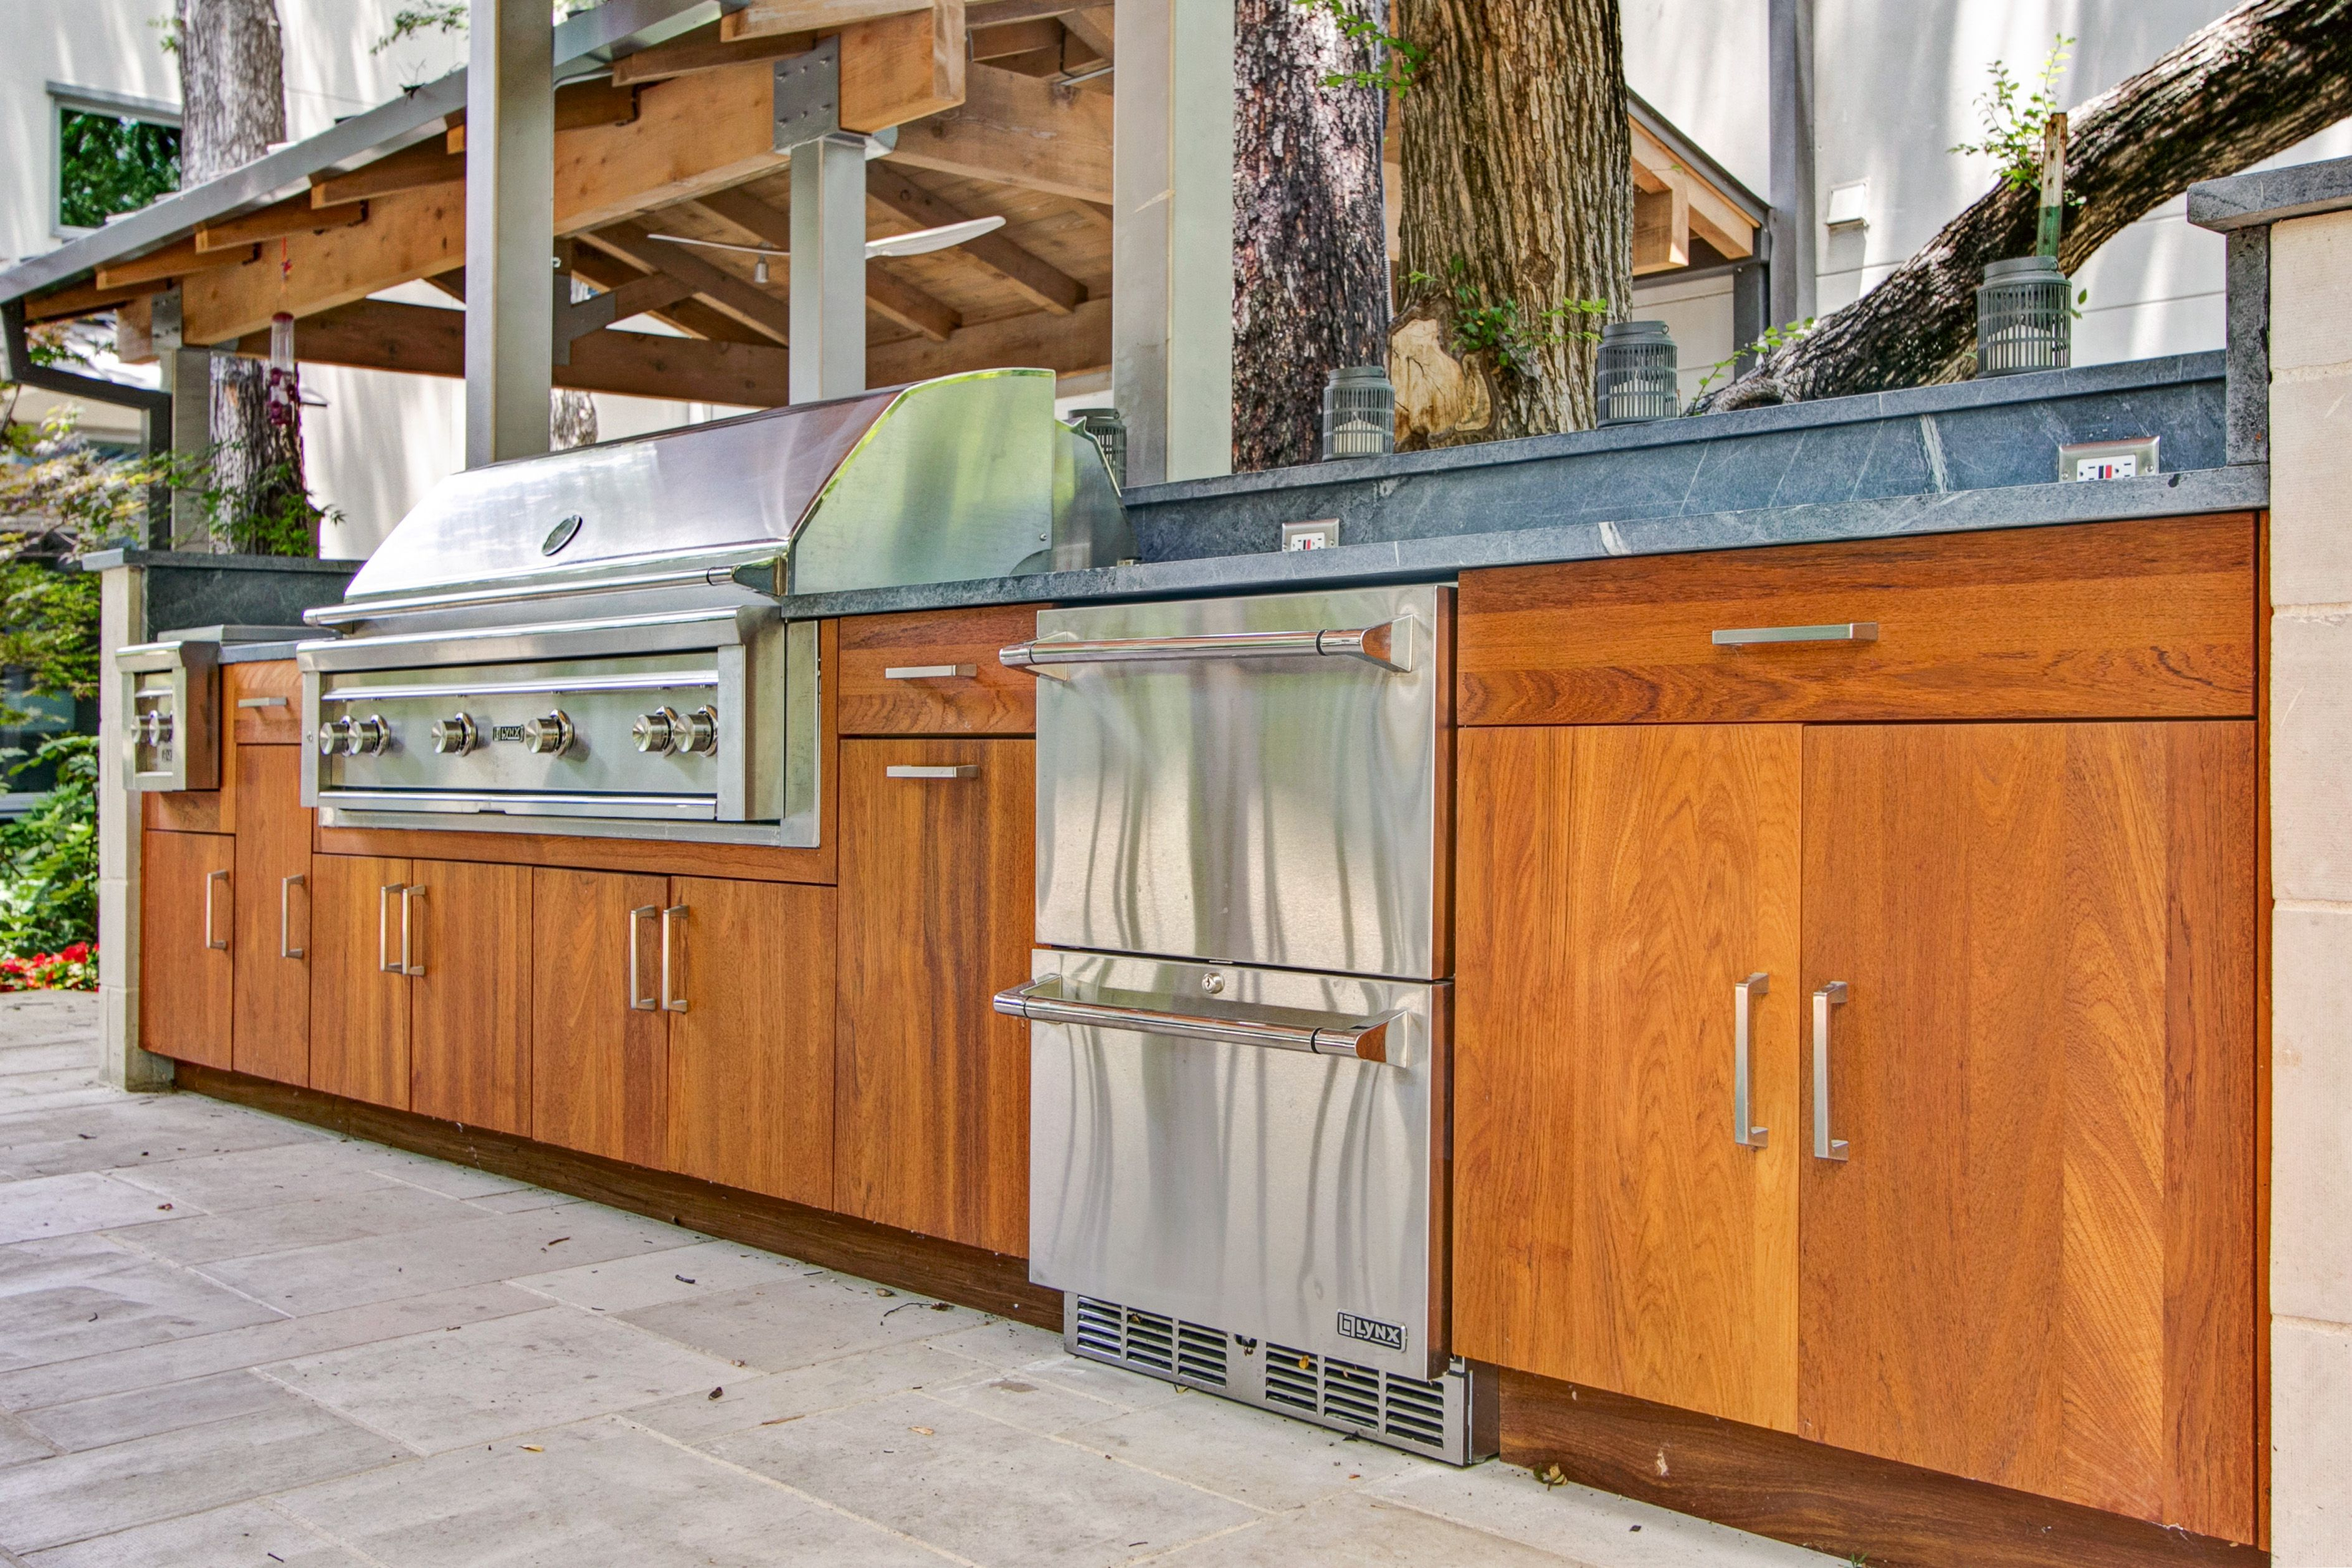 Teak Cabinets With Slab Door Lynx 54 Grill Double Side Burner And Drawer Fridge North Dallas Wildwood Outdoor Outdoor Kitchen Kitchen Kitchen Design